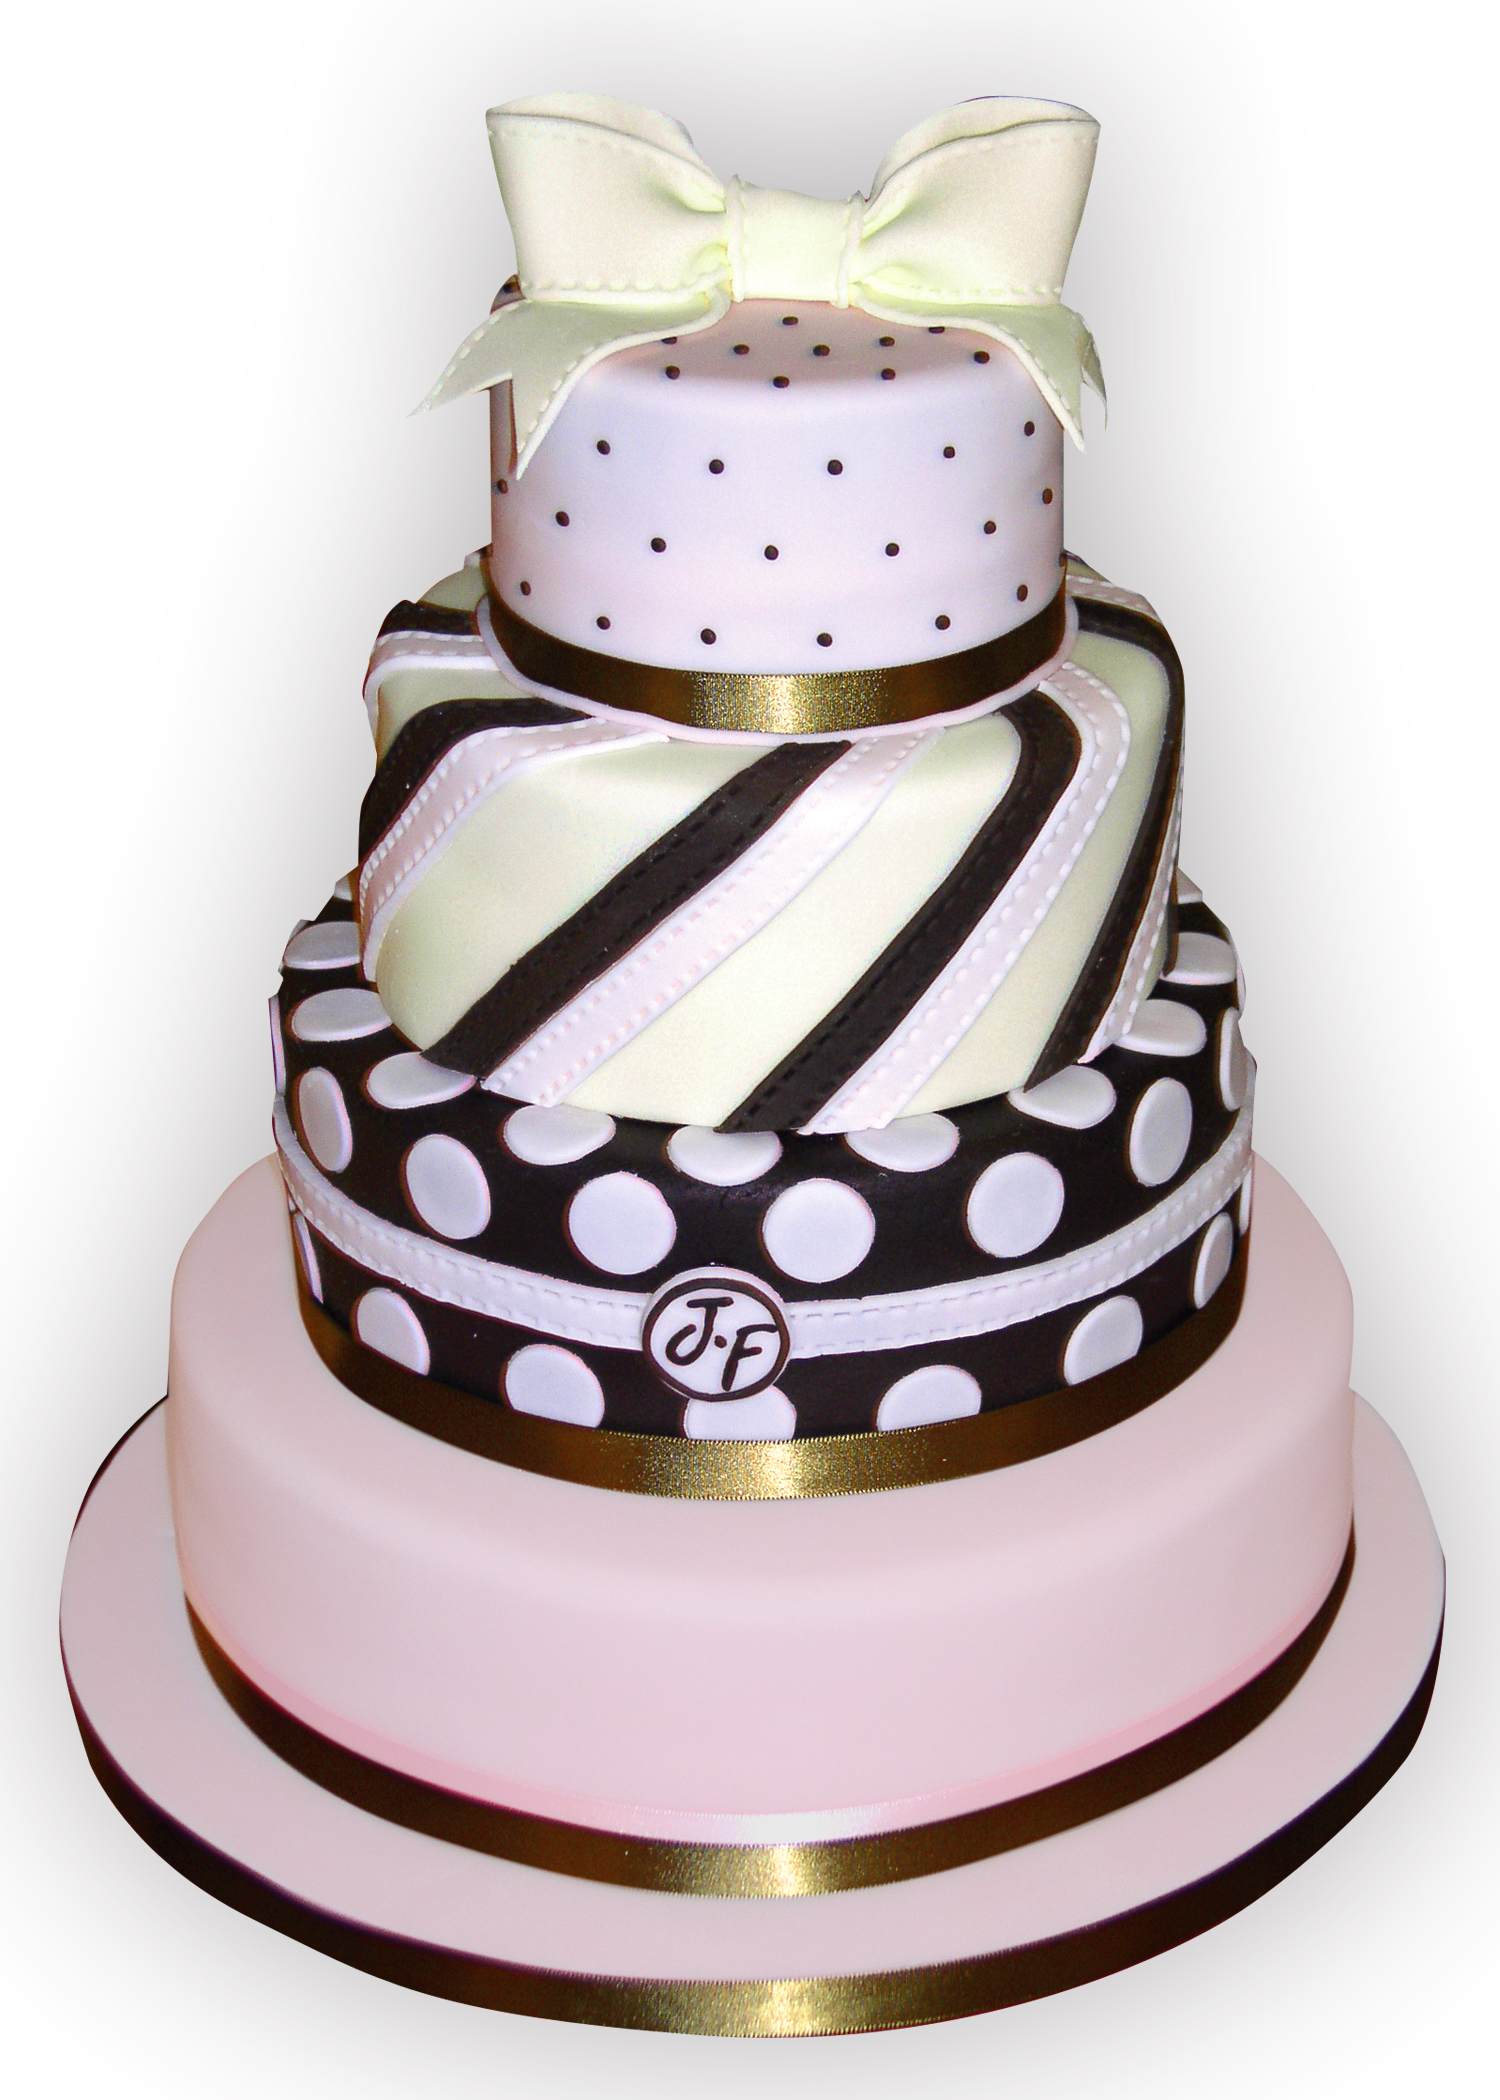 wedding cake with dots pink polka dot wedding cake flickr photo 26869